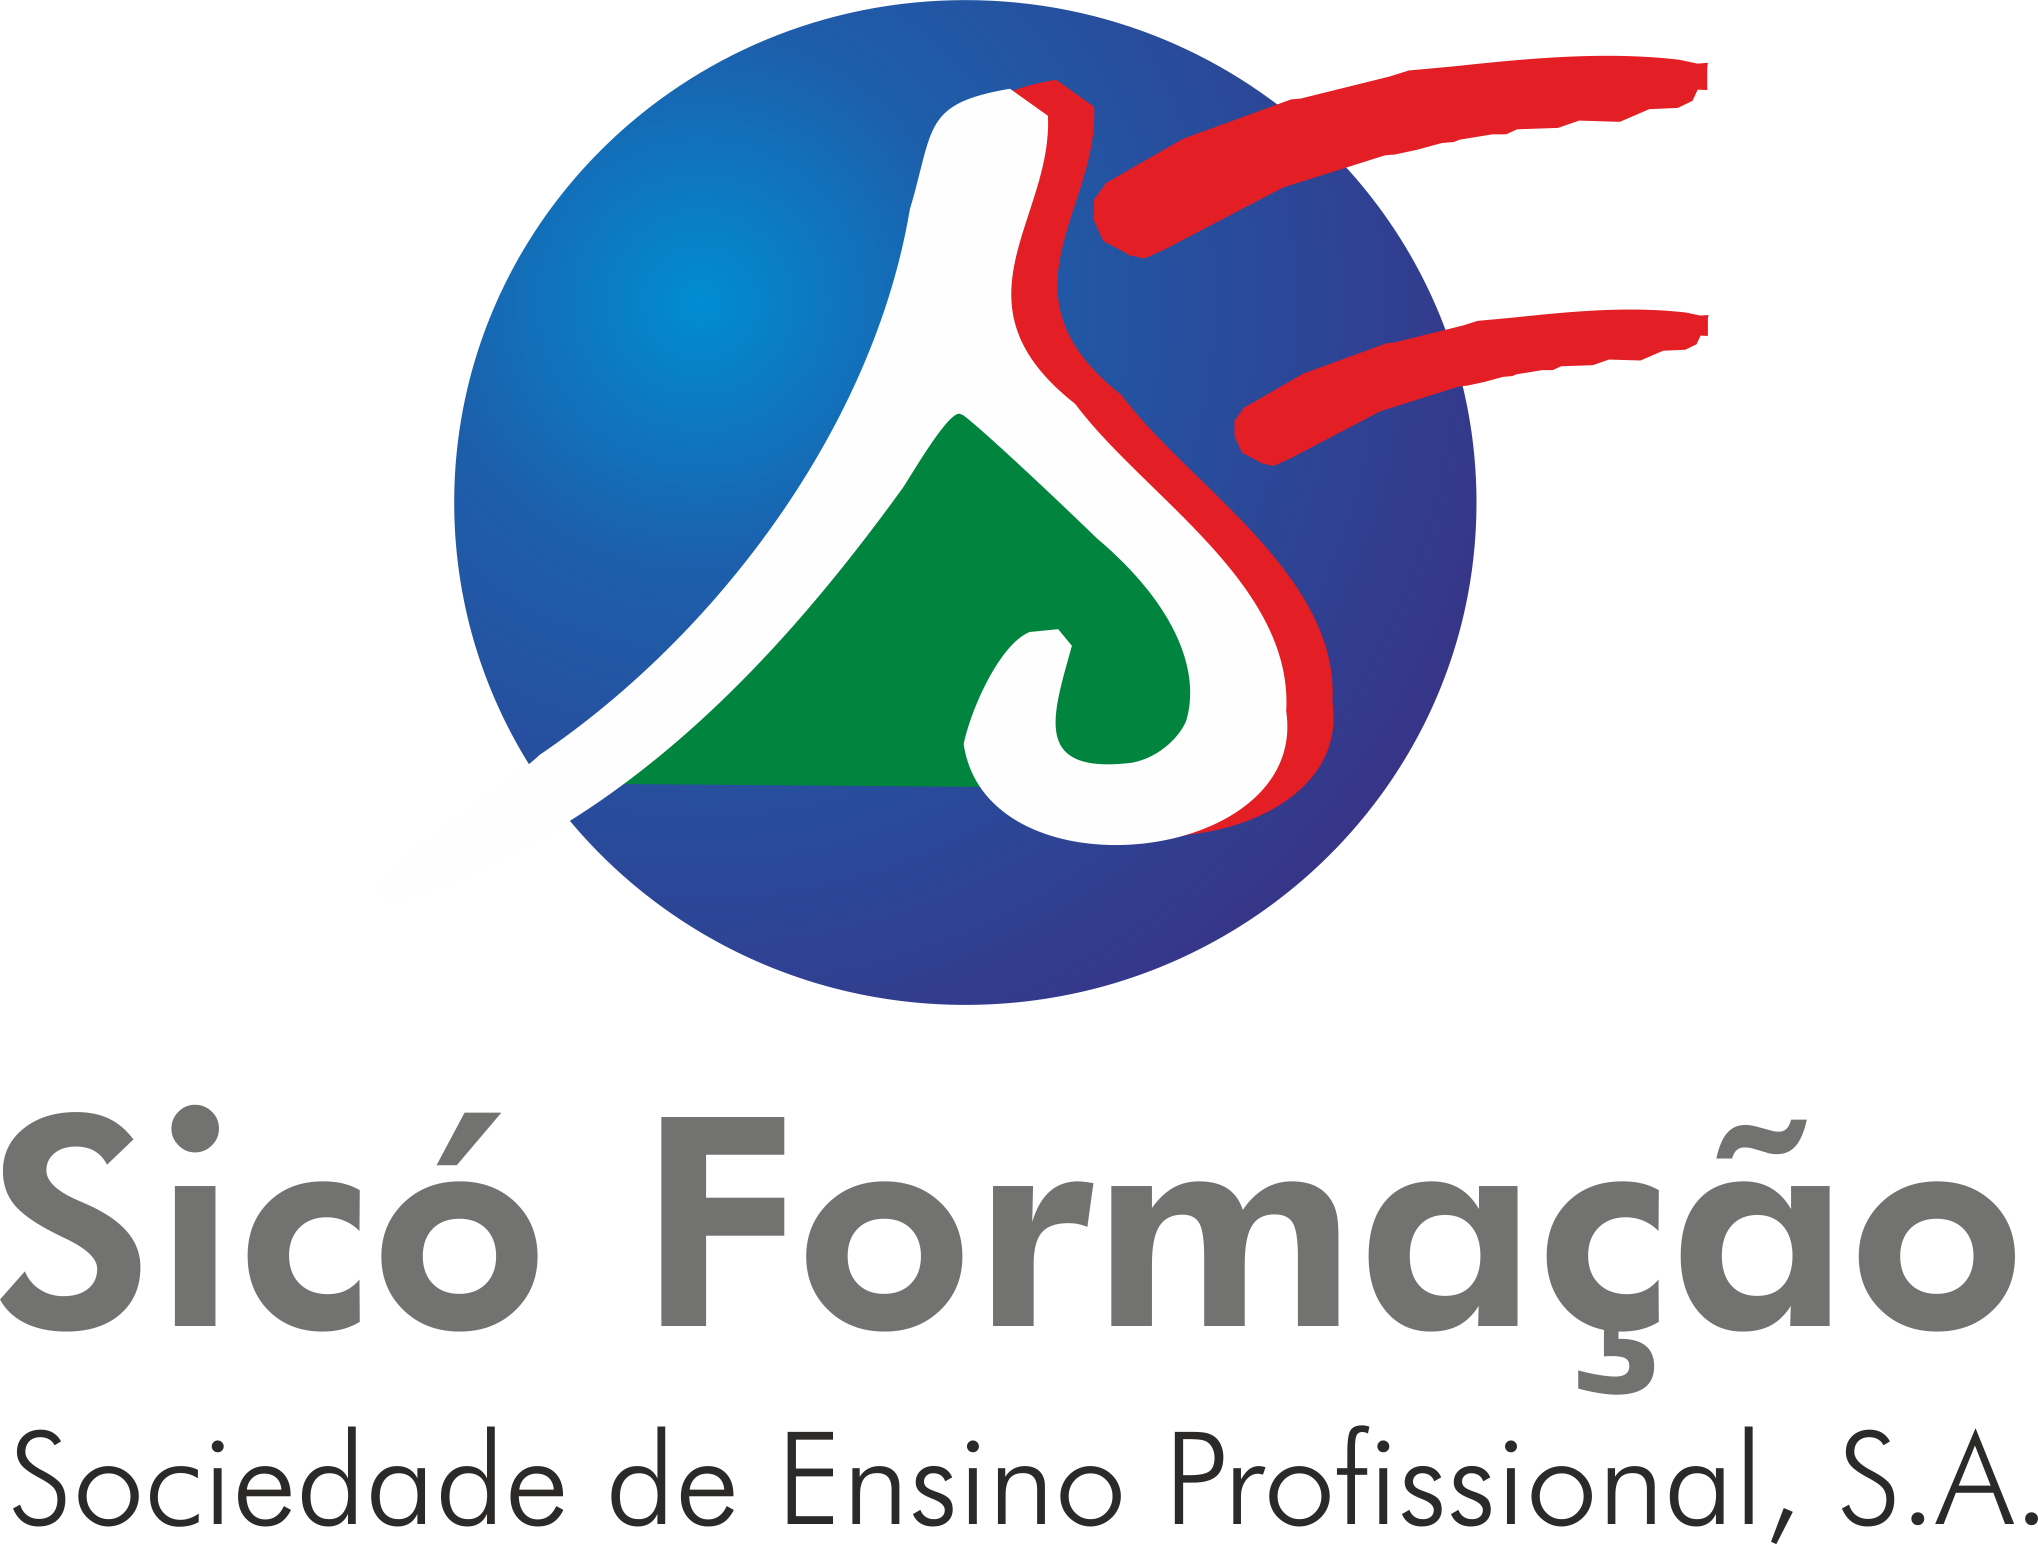 Sico_Formacao.png